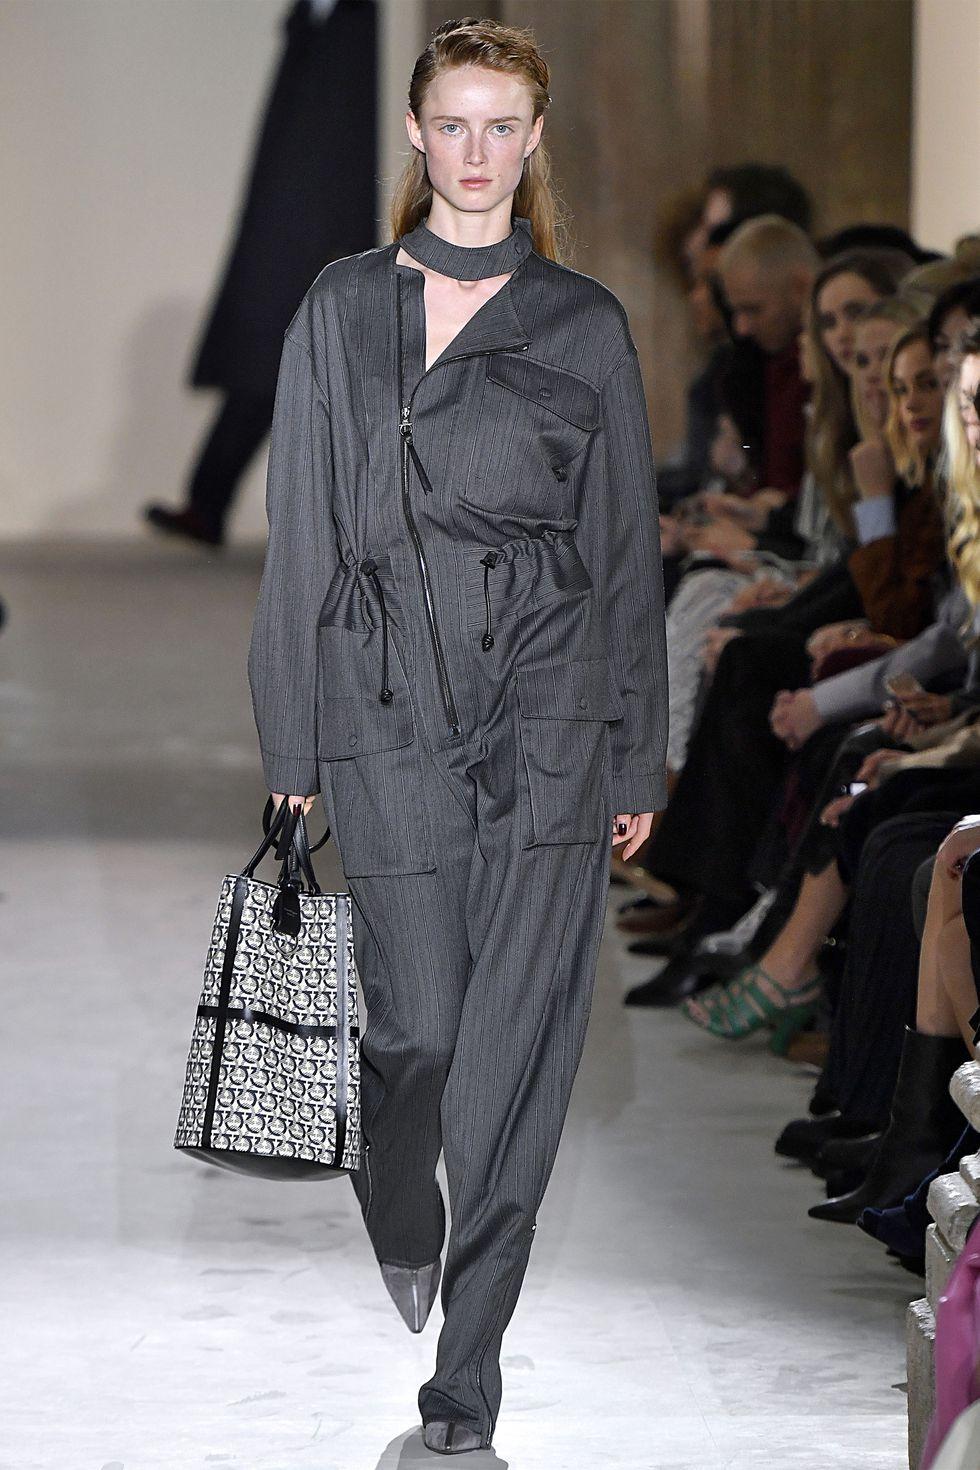 hbz-fw2019-trends-utility-05-gettyimages-1131567901.jpg